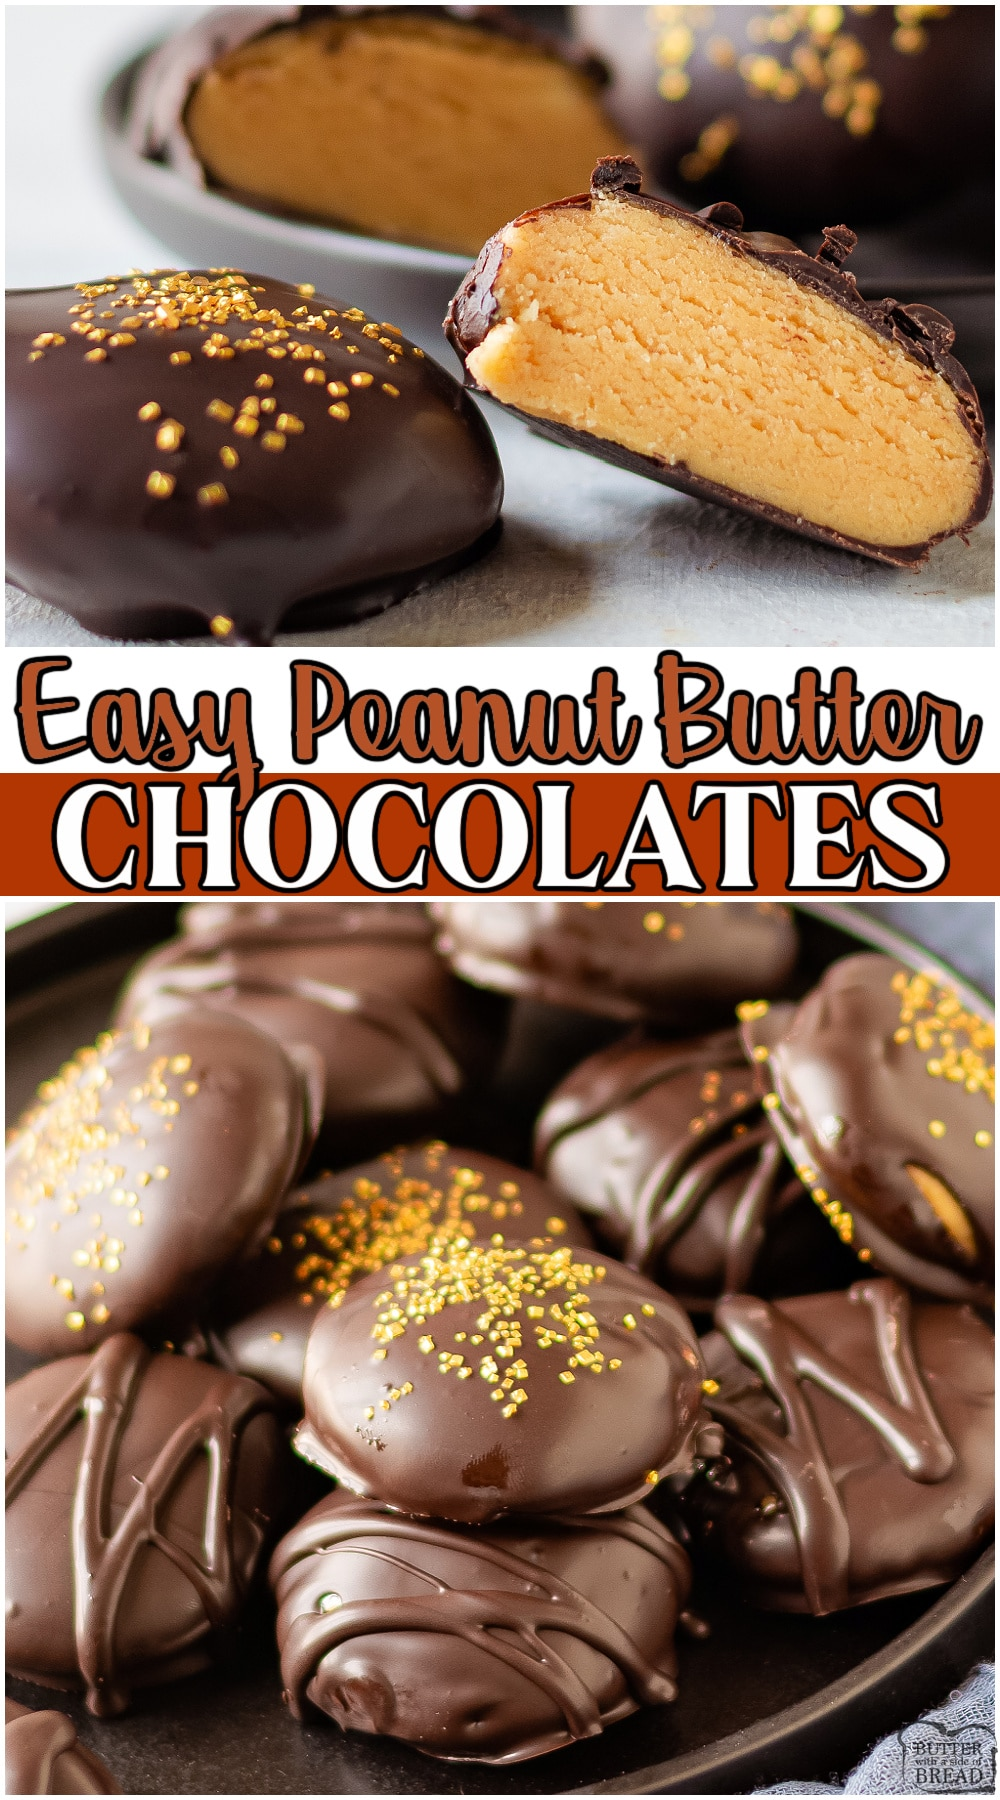 Homemade Chocolate peanut butter candy made with peanut butter, chocolate, powdered sugar, butter & vanilla! Fancy peanut butter chocolates made easy at home & perfect for gift giving! #chocolate #peanutbutter #candy #nobake #easyrecipe from BUTTER WITH A SIDE OF BREAD